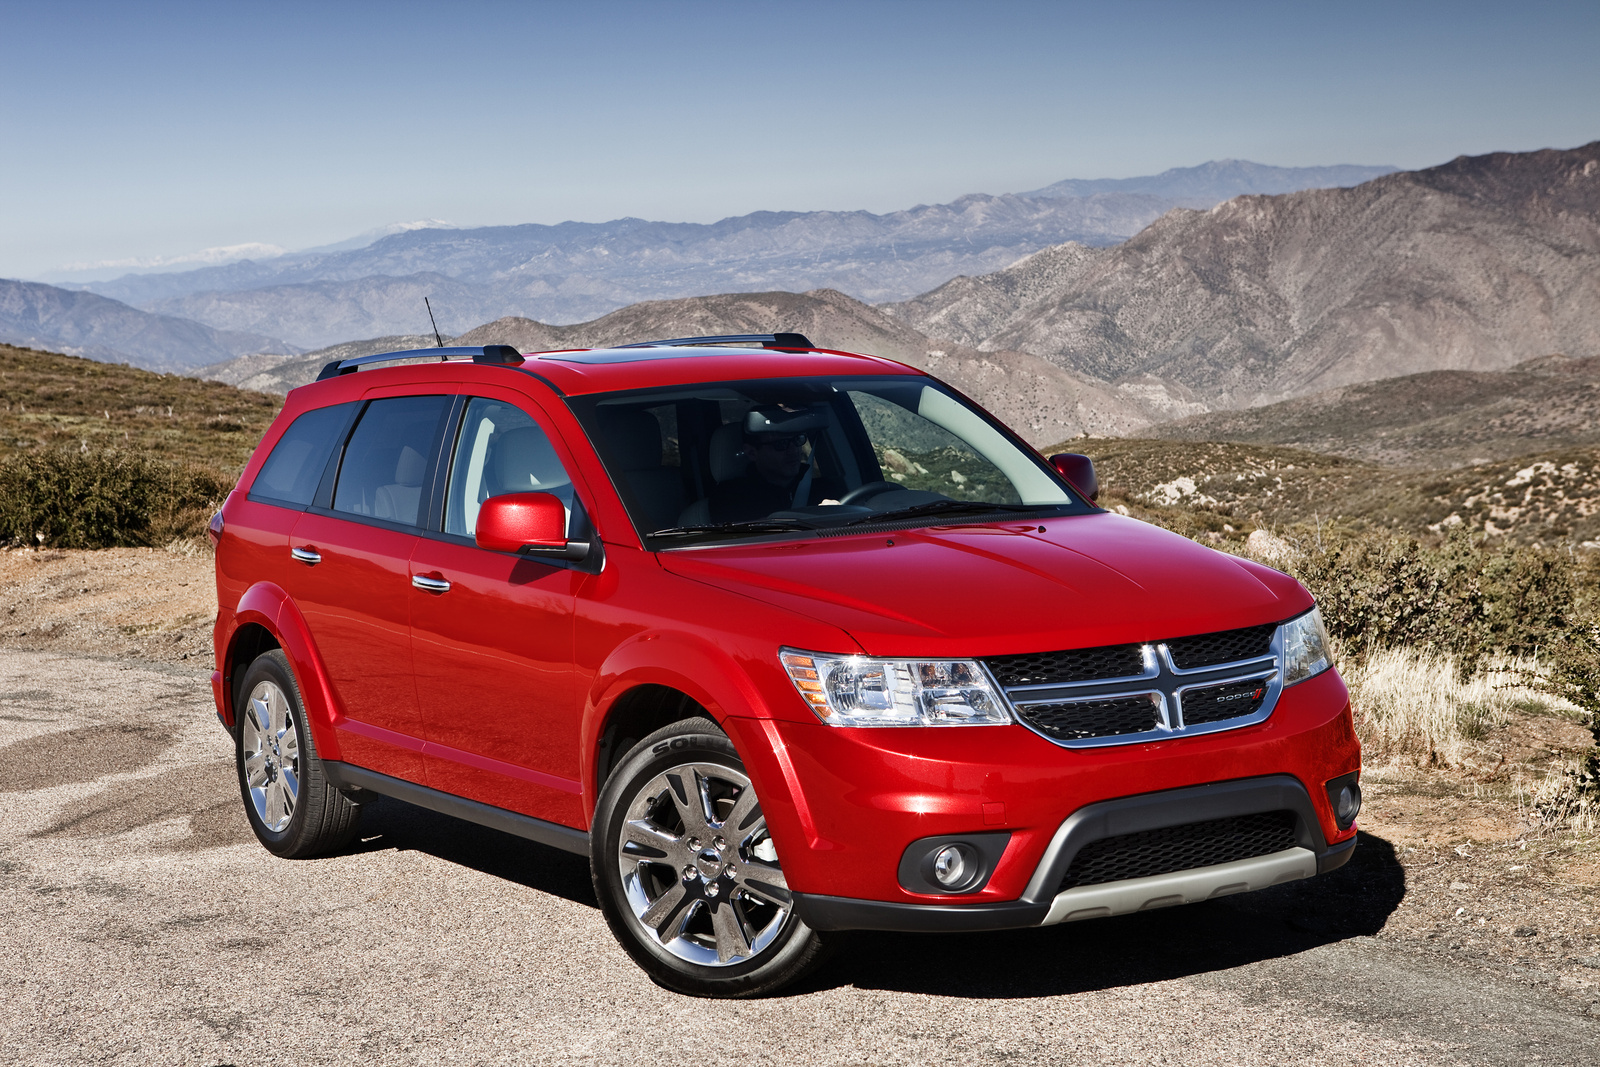 2014 dodge journey test drive review cargurus. Cars Review. Best American Auto & Cars Review